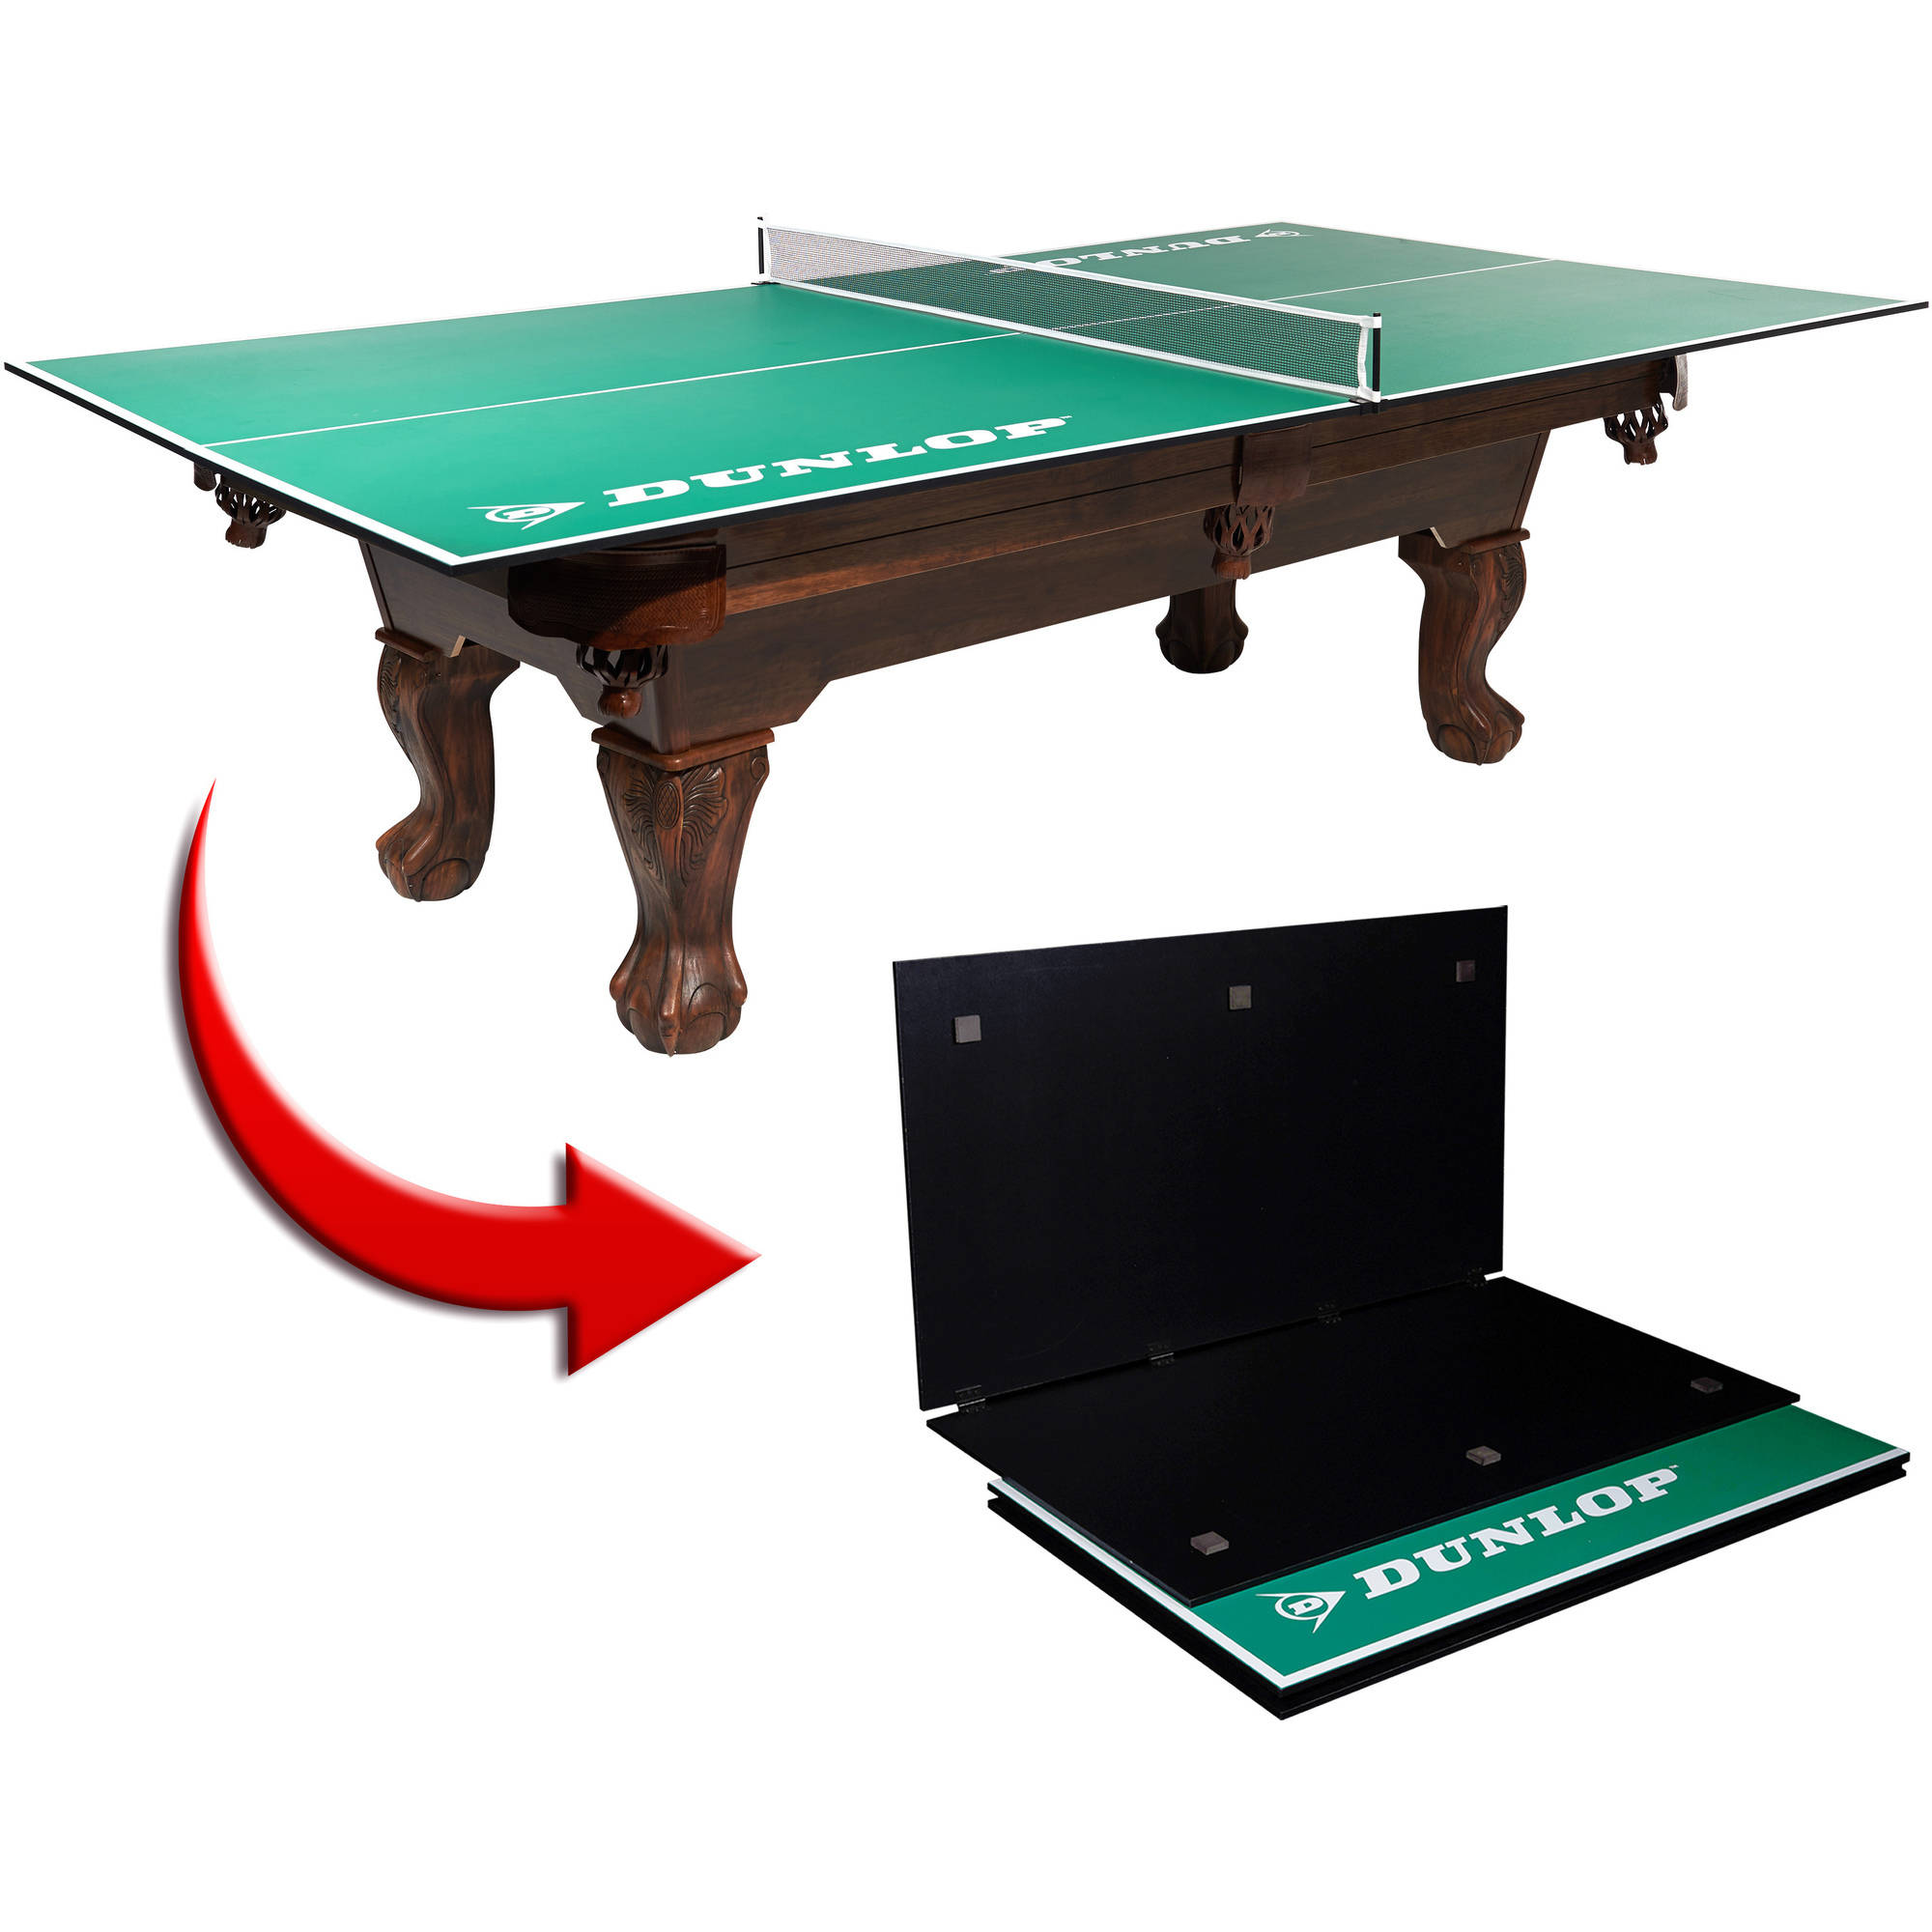 Ping pong table top - Ping Pong Table Top 37